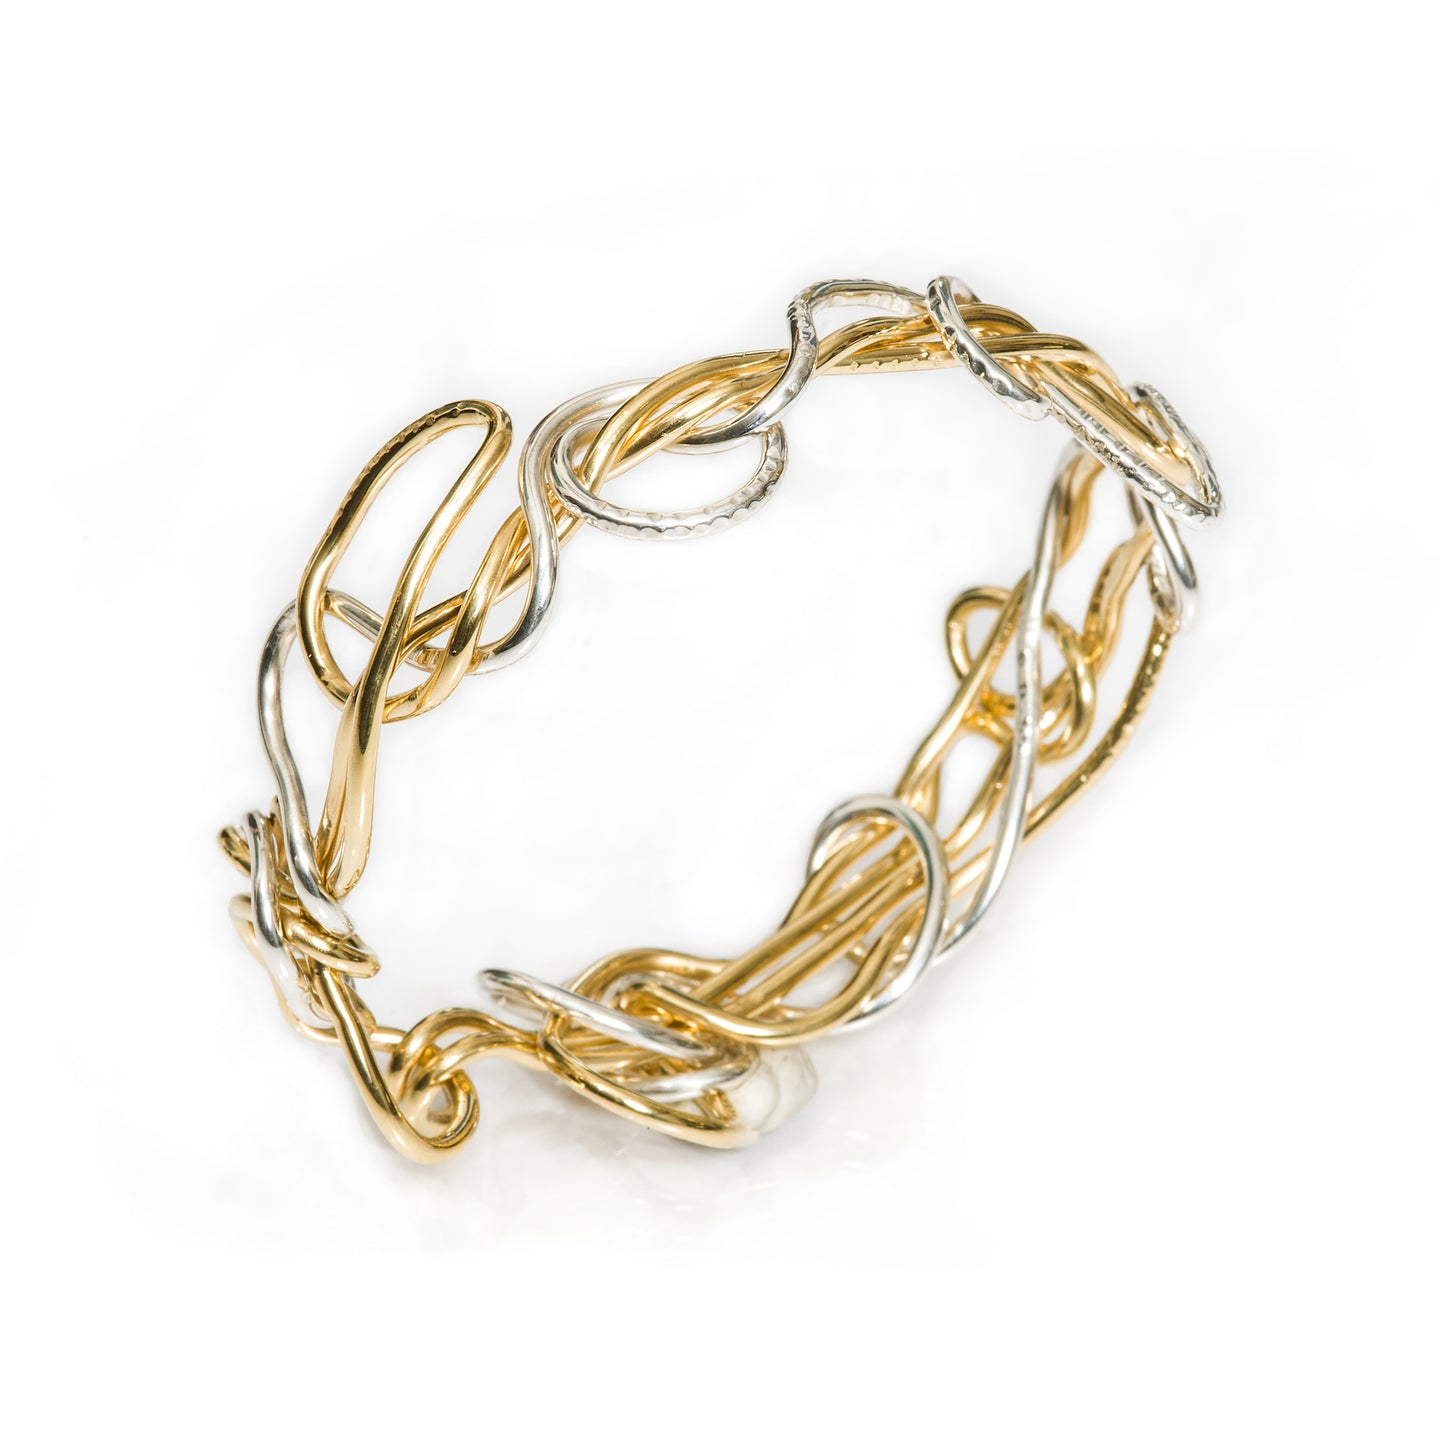 Mixed-Metal Endless Love Bracelet